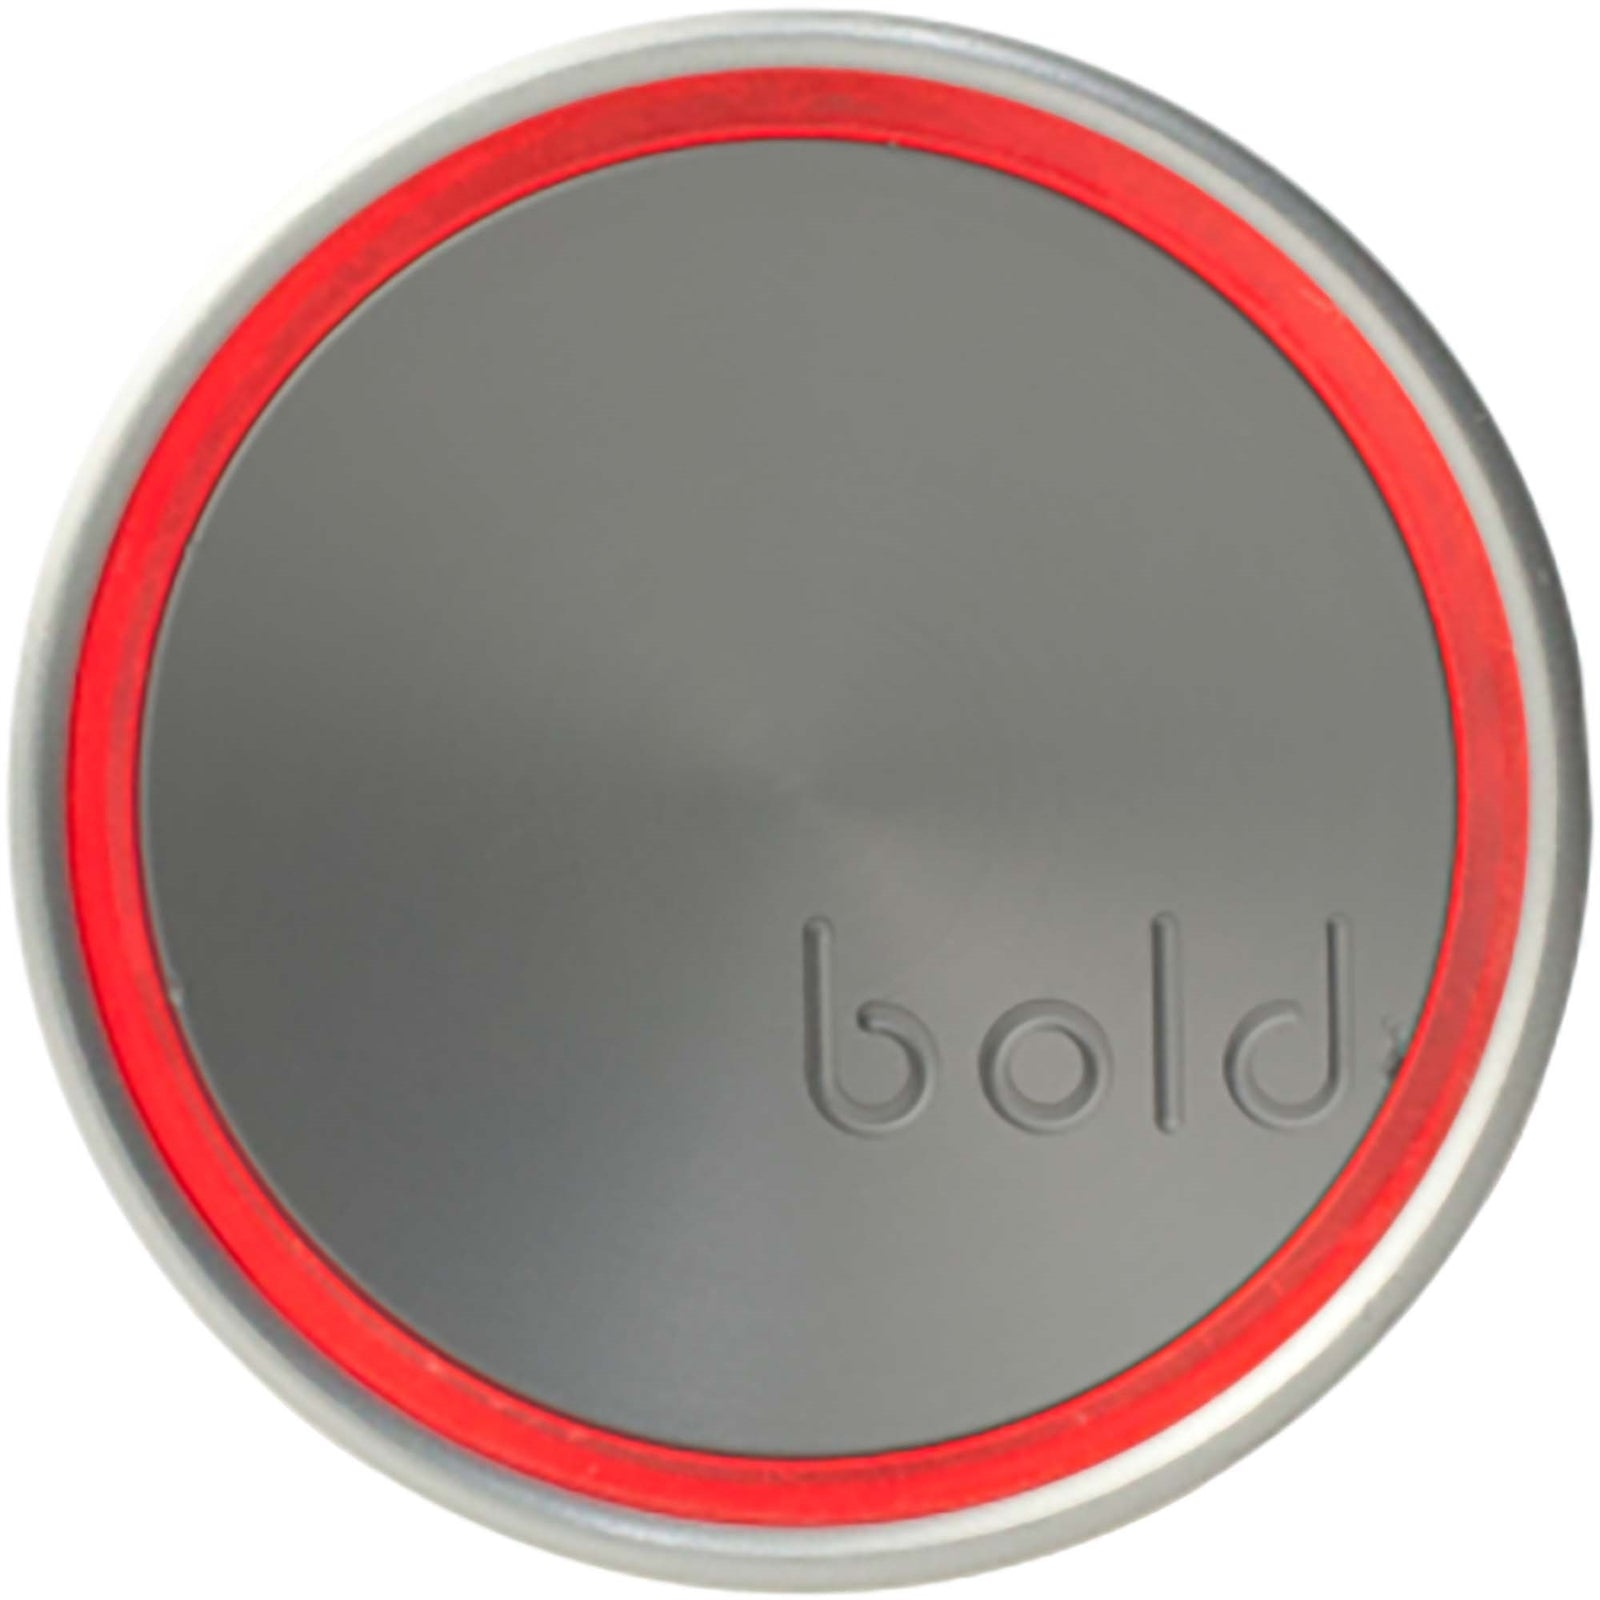 Bold SX-45 Smart Door Lock - Cylinder